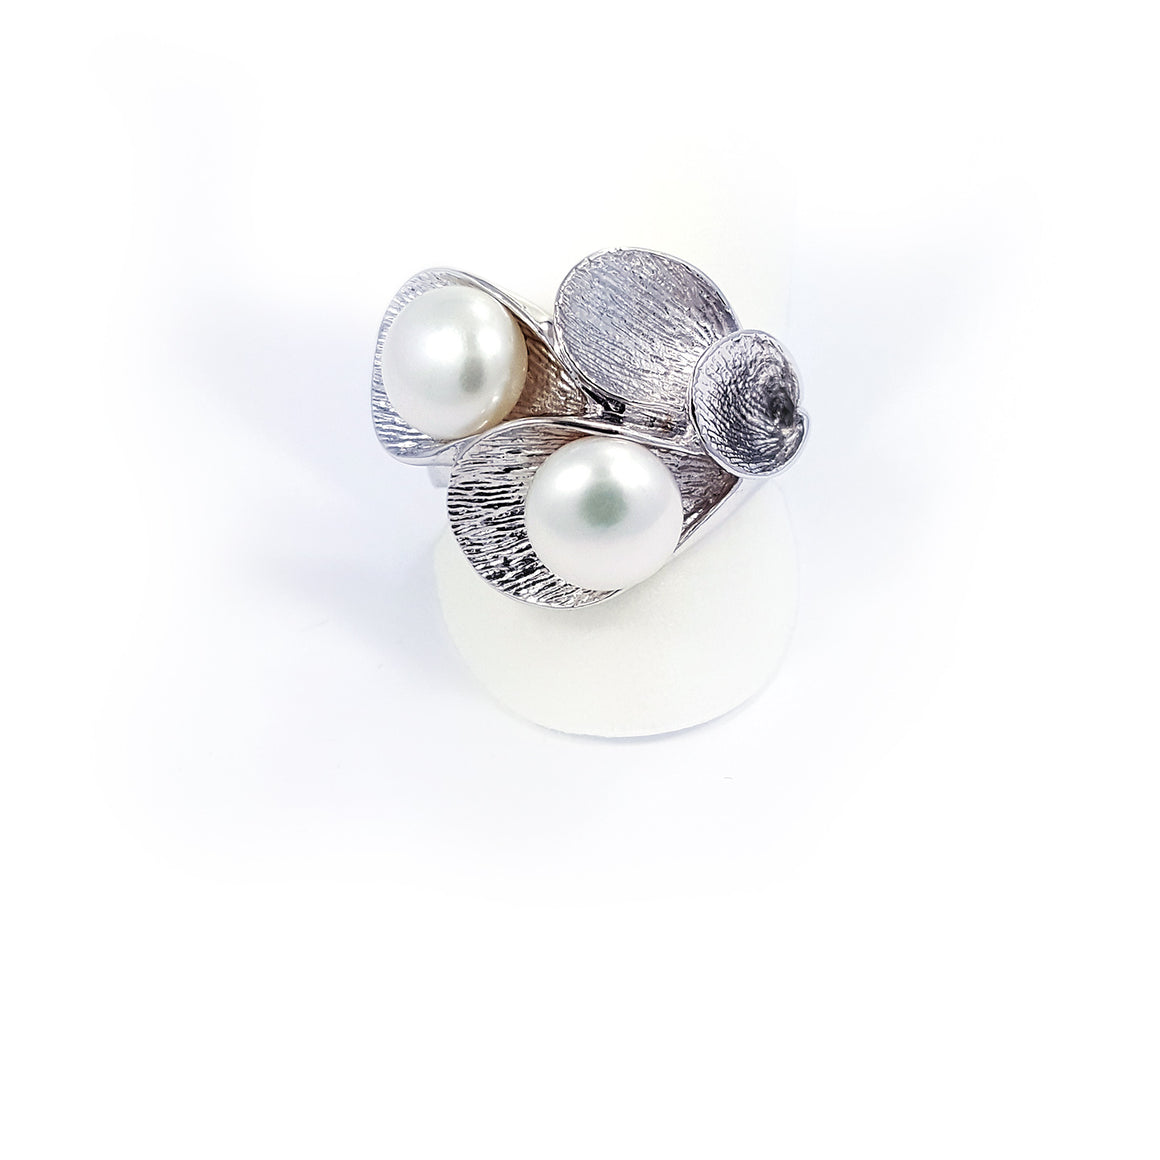 Silver ring with fresh water pearls